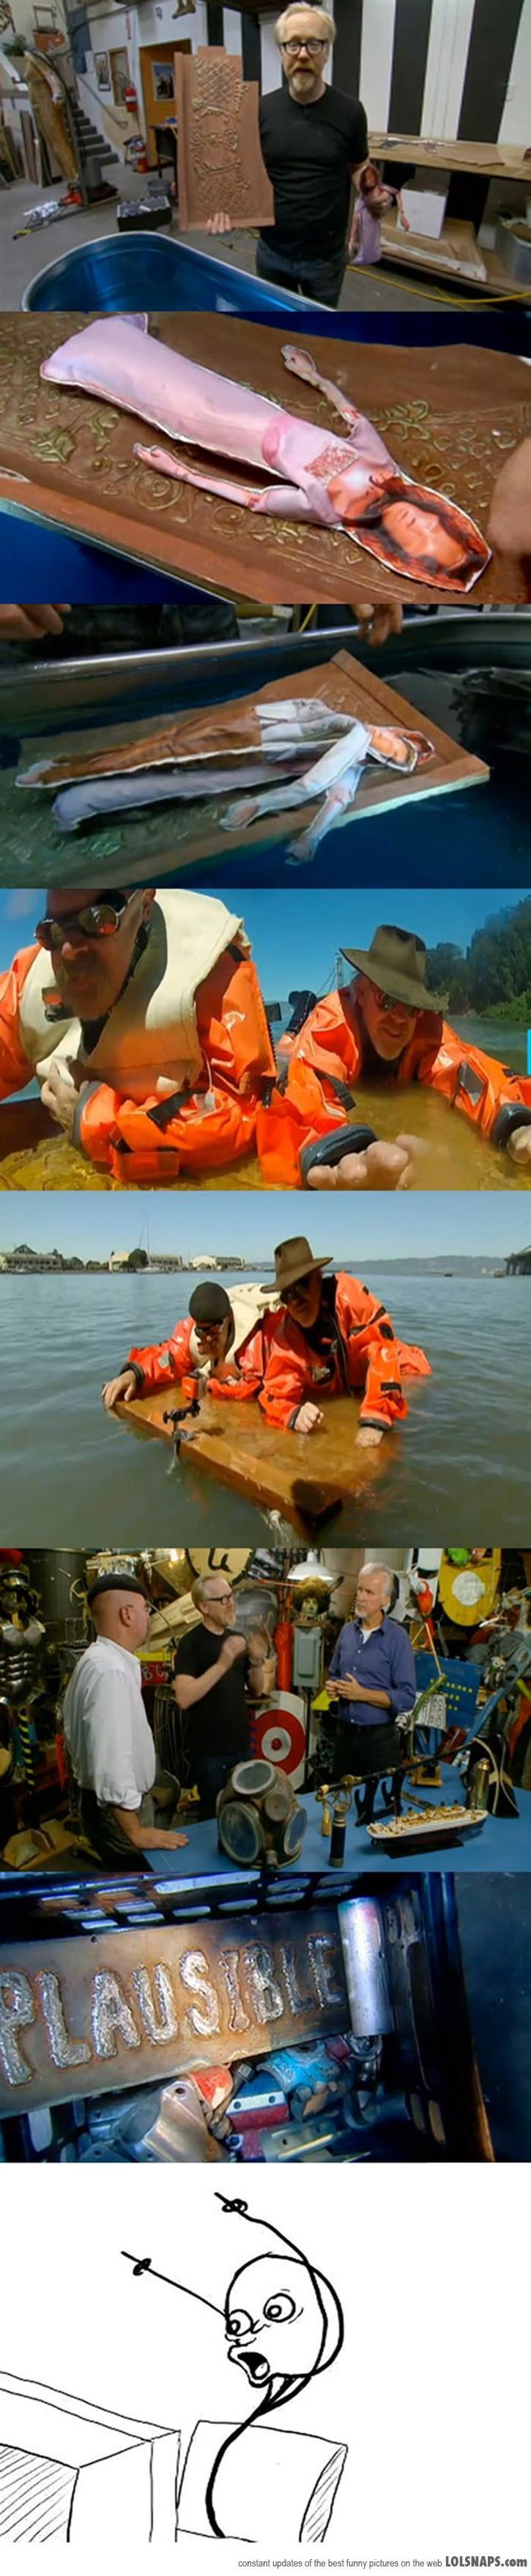 Mythbusters Prove That Two Could Have Fit Myth Busters1 James Cameron0